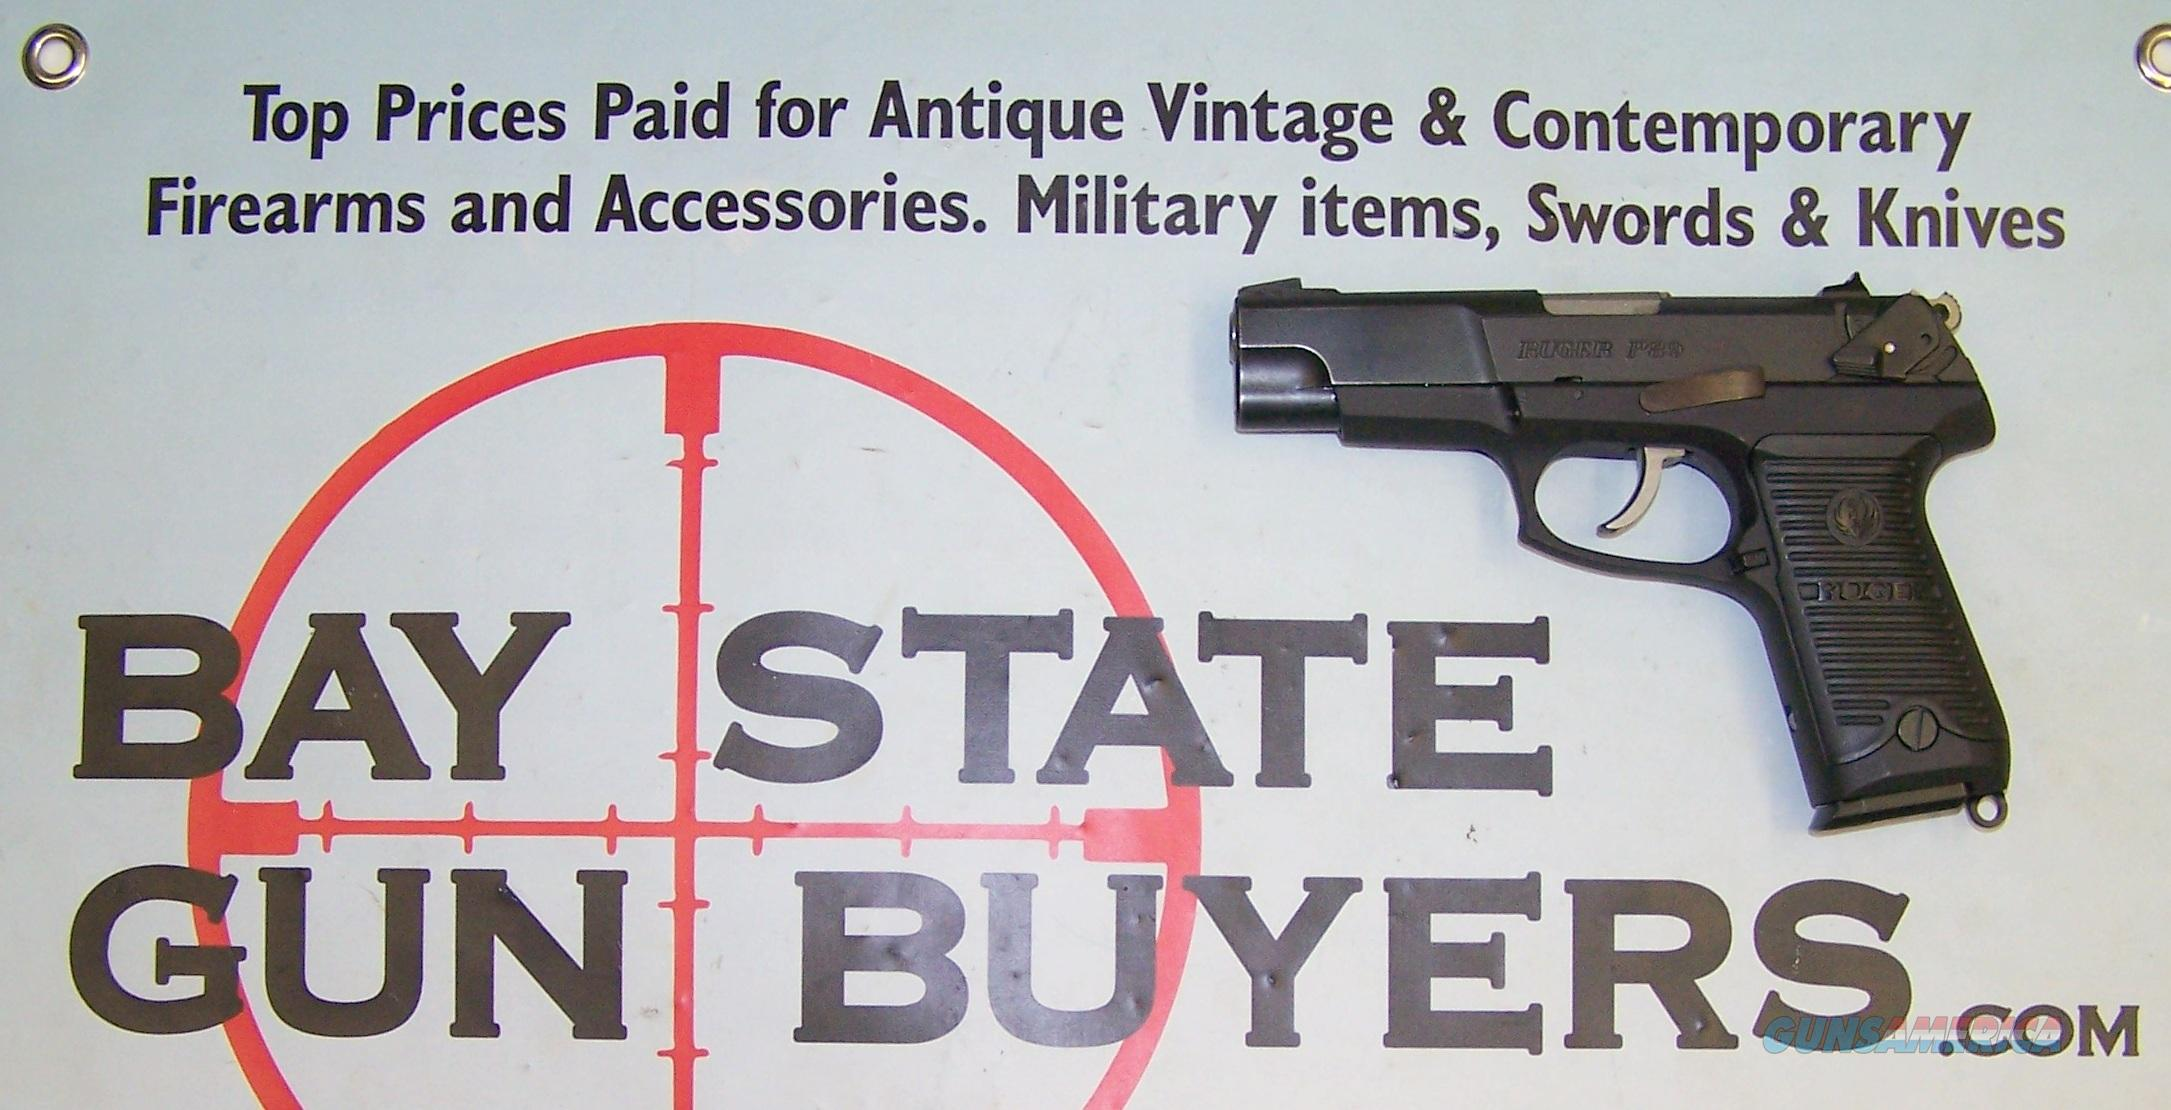 Ruger P89 semi-automtic pistol 9mm EXCELLENT P 89 BOX, PAPERS, EXTRA MAG  Guns > Pistols > Ruger Semi-Auto Pistols > P-Series